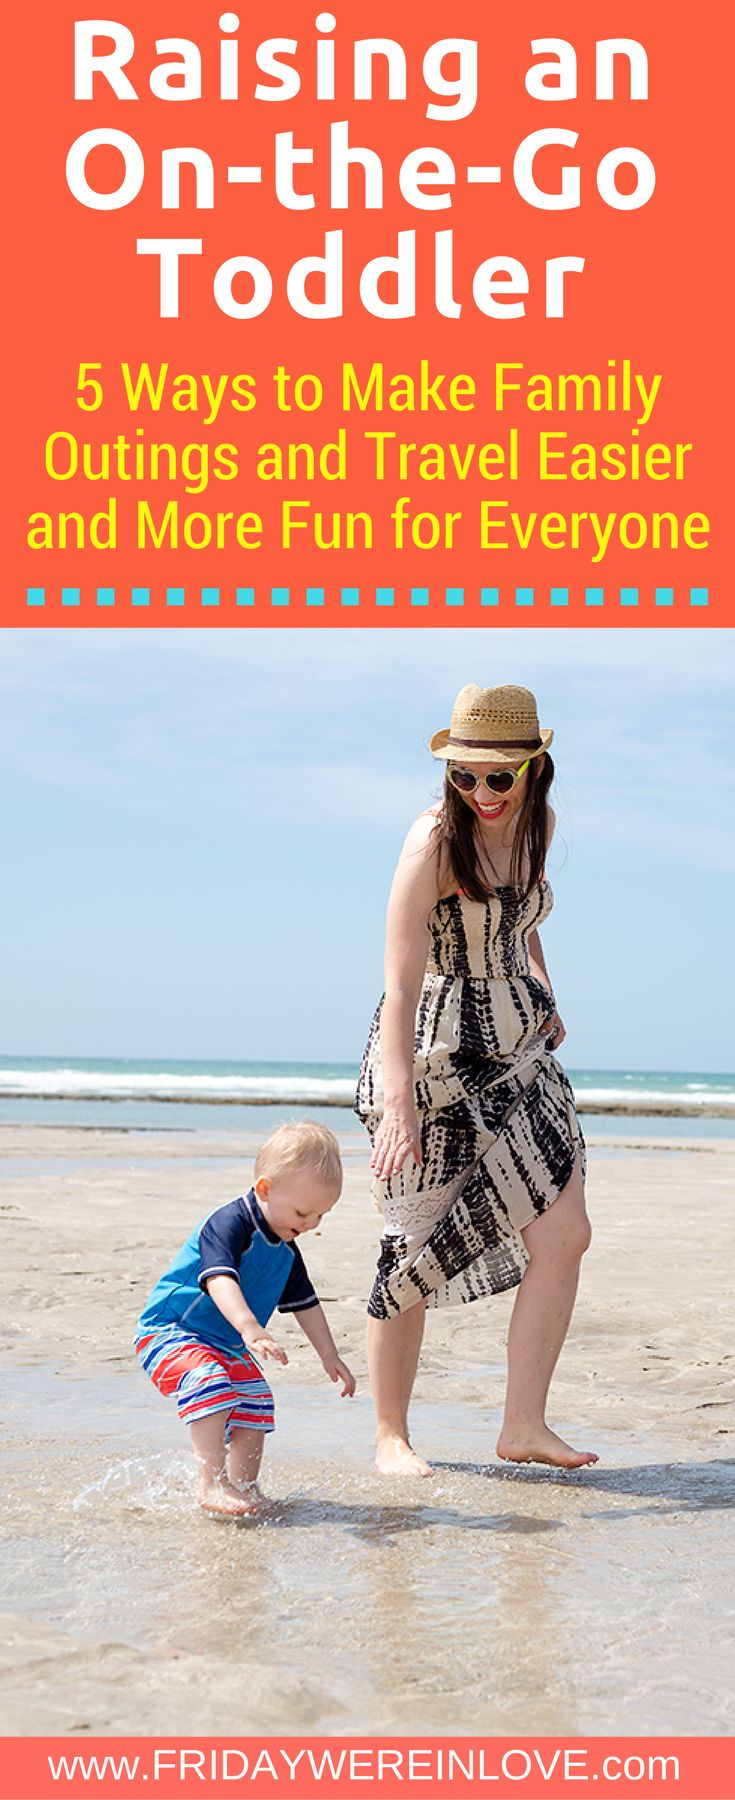 5 Ways to Make Family Outings and Travel Easier and More Fun For Everyone - Friday We're in Love